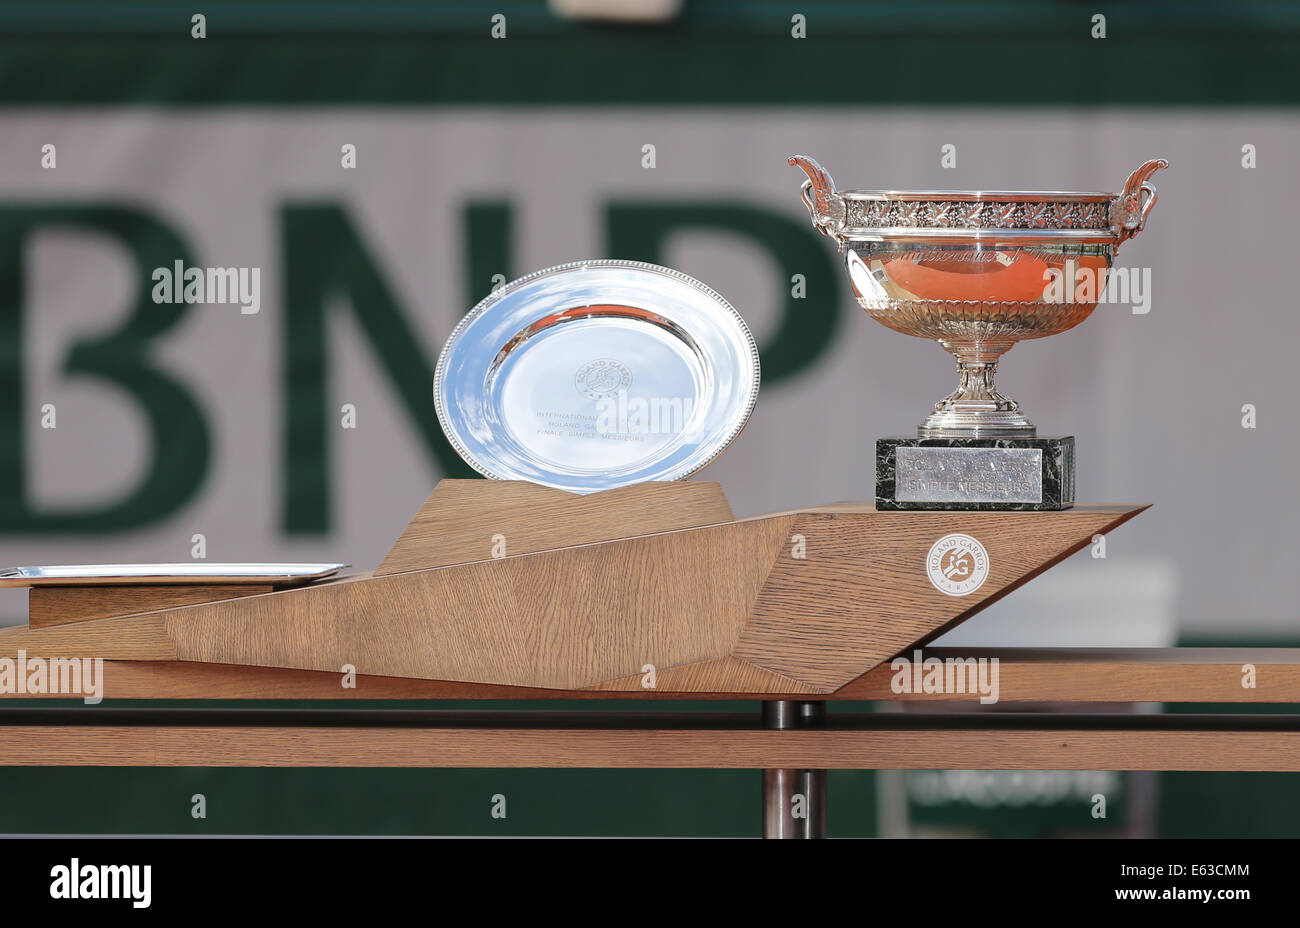 Men`s Singles  trophies, French Open 2014,Roland Garros, Paris,France - Stock Image